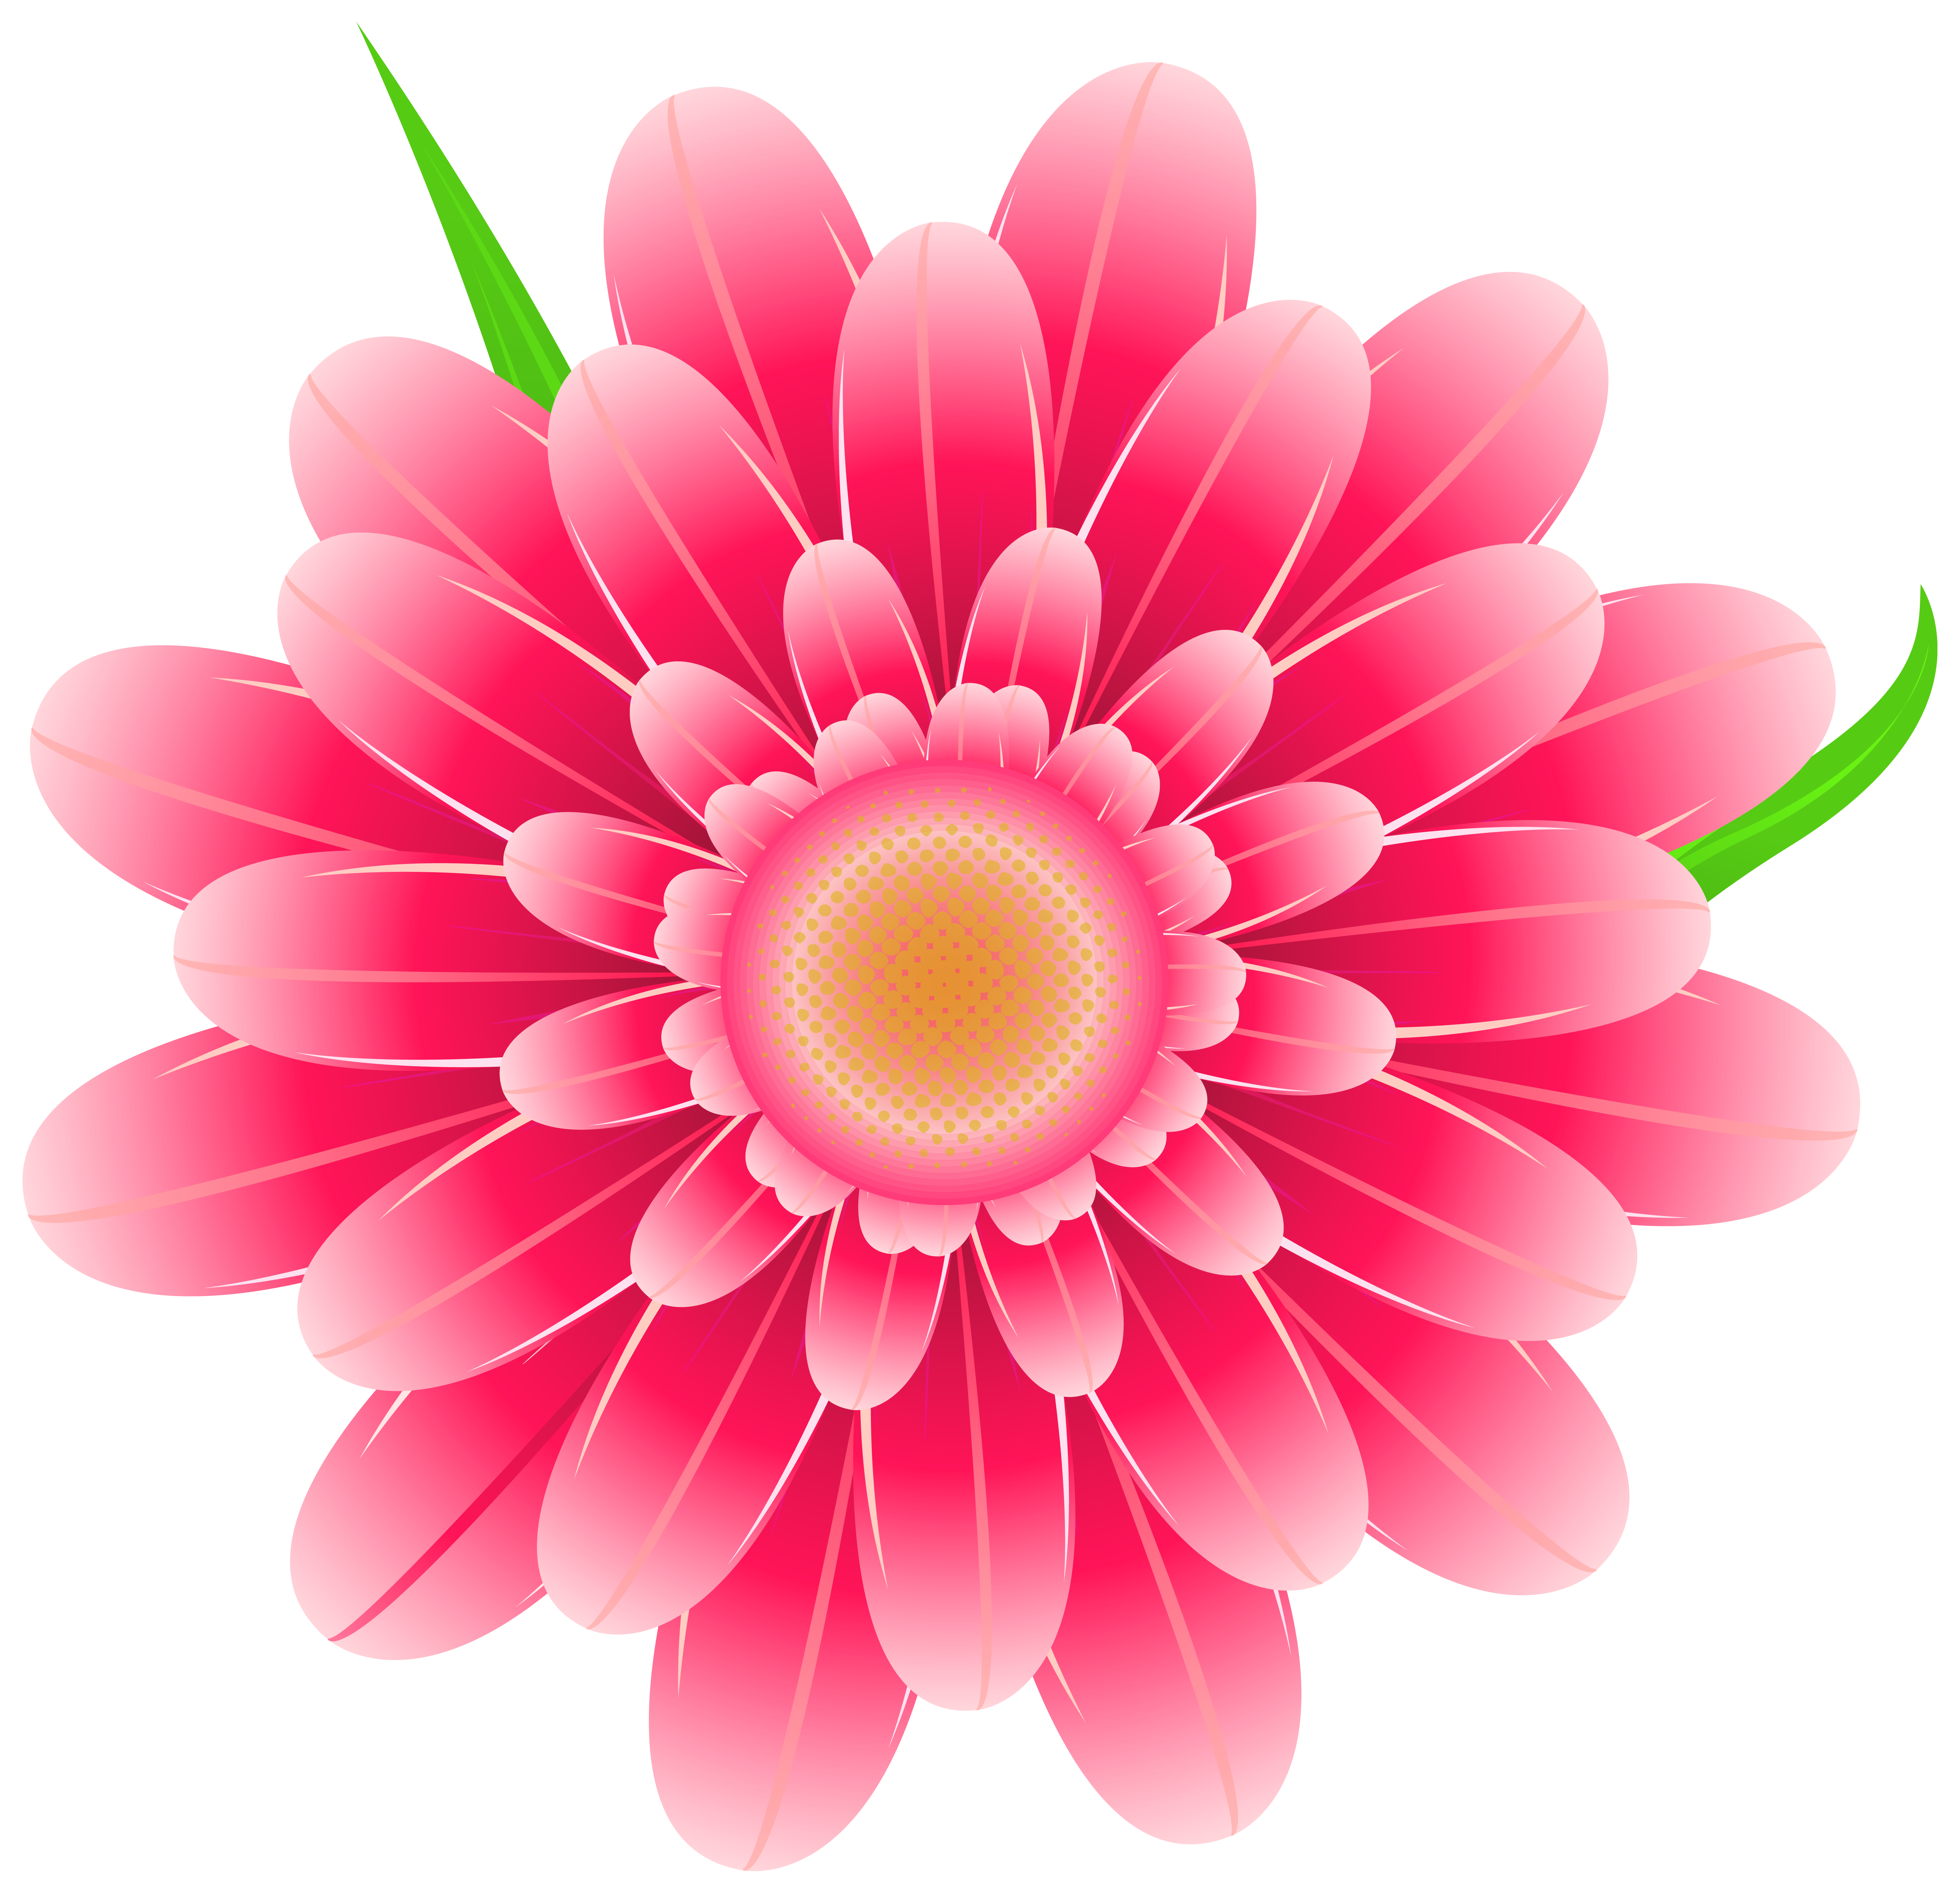 Clipart Flower Png 20 Free Cliparts Download Images On Clipground 2019